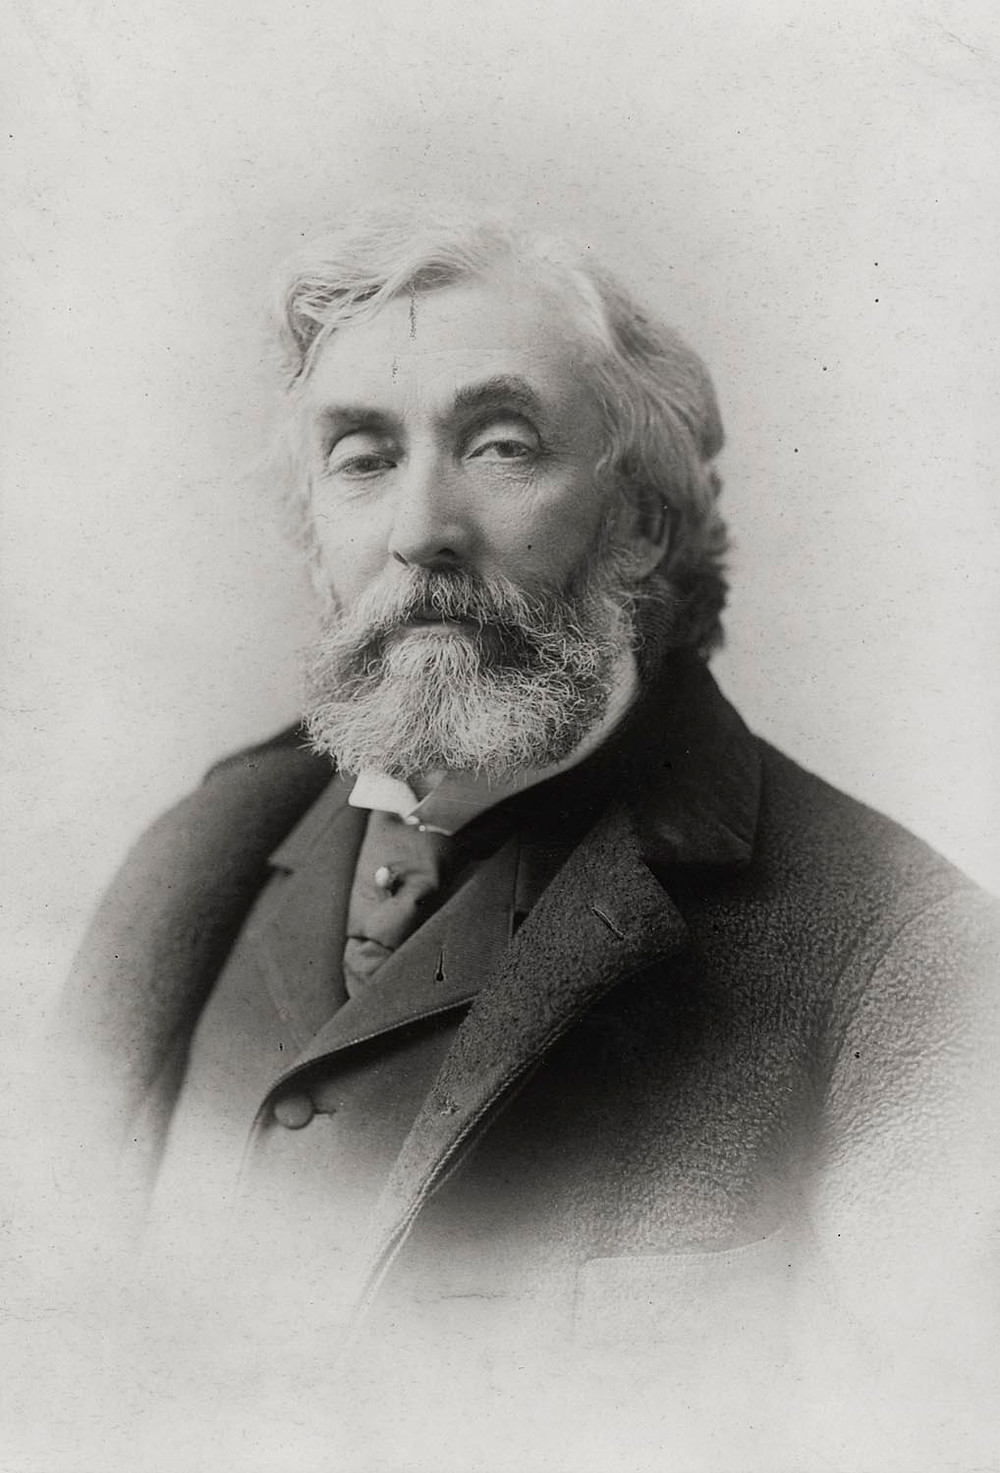 Dr. Charles Adams - University of Wisconsin Archives - https://uwdc.library.wisc.edu